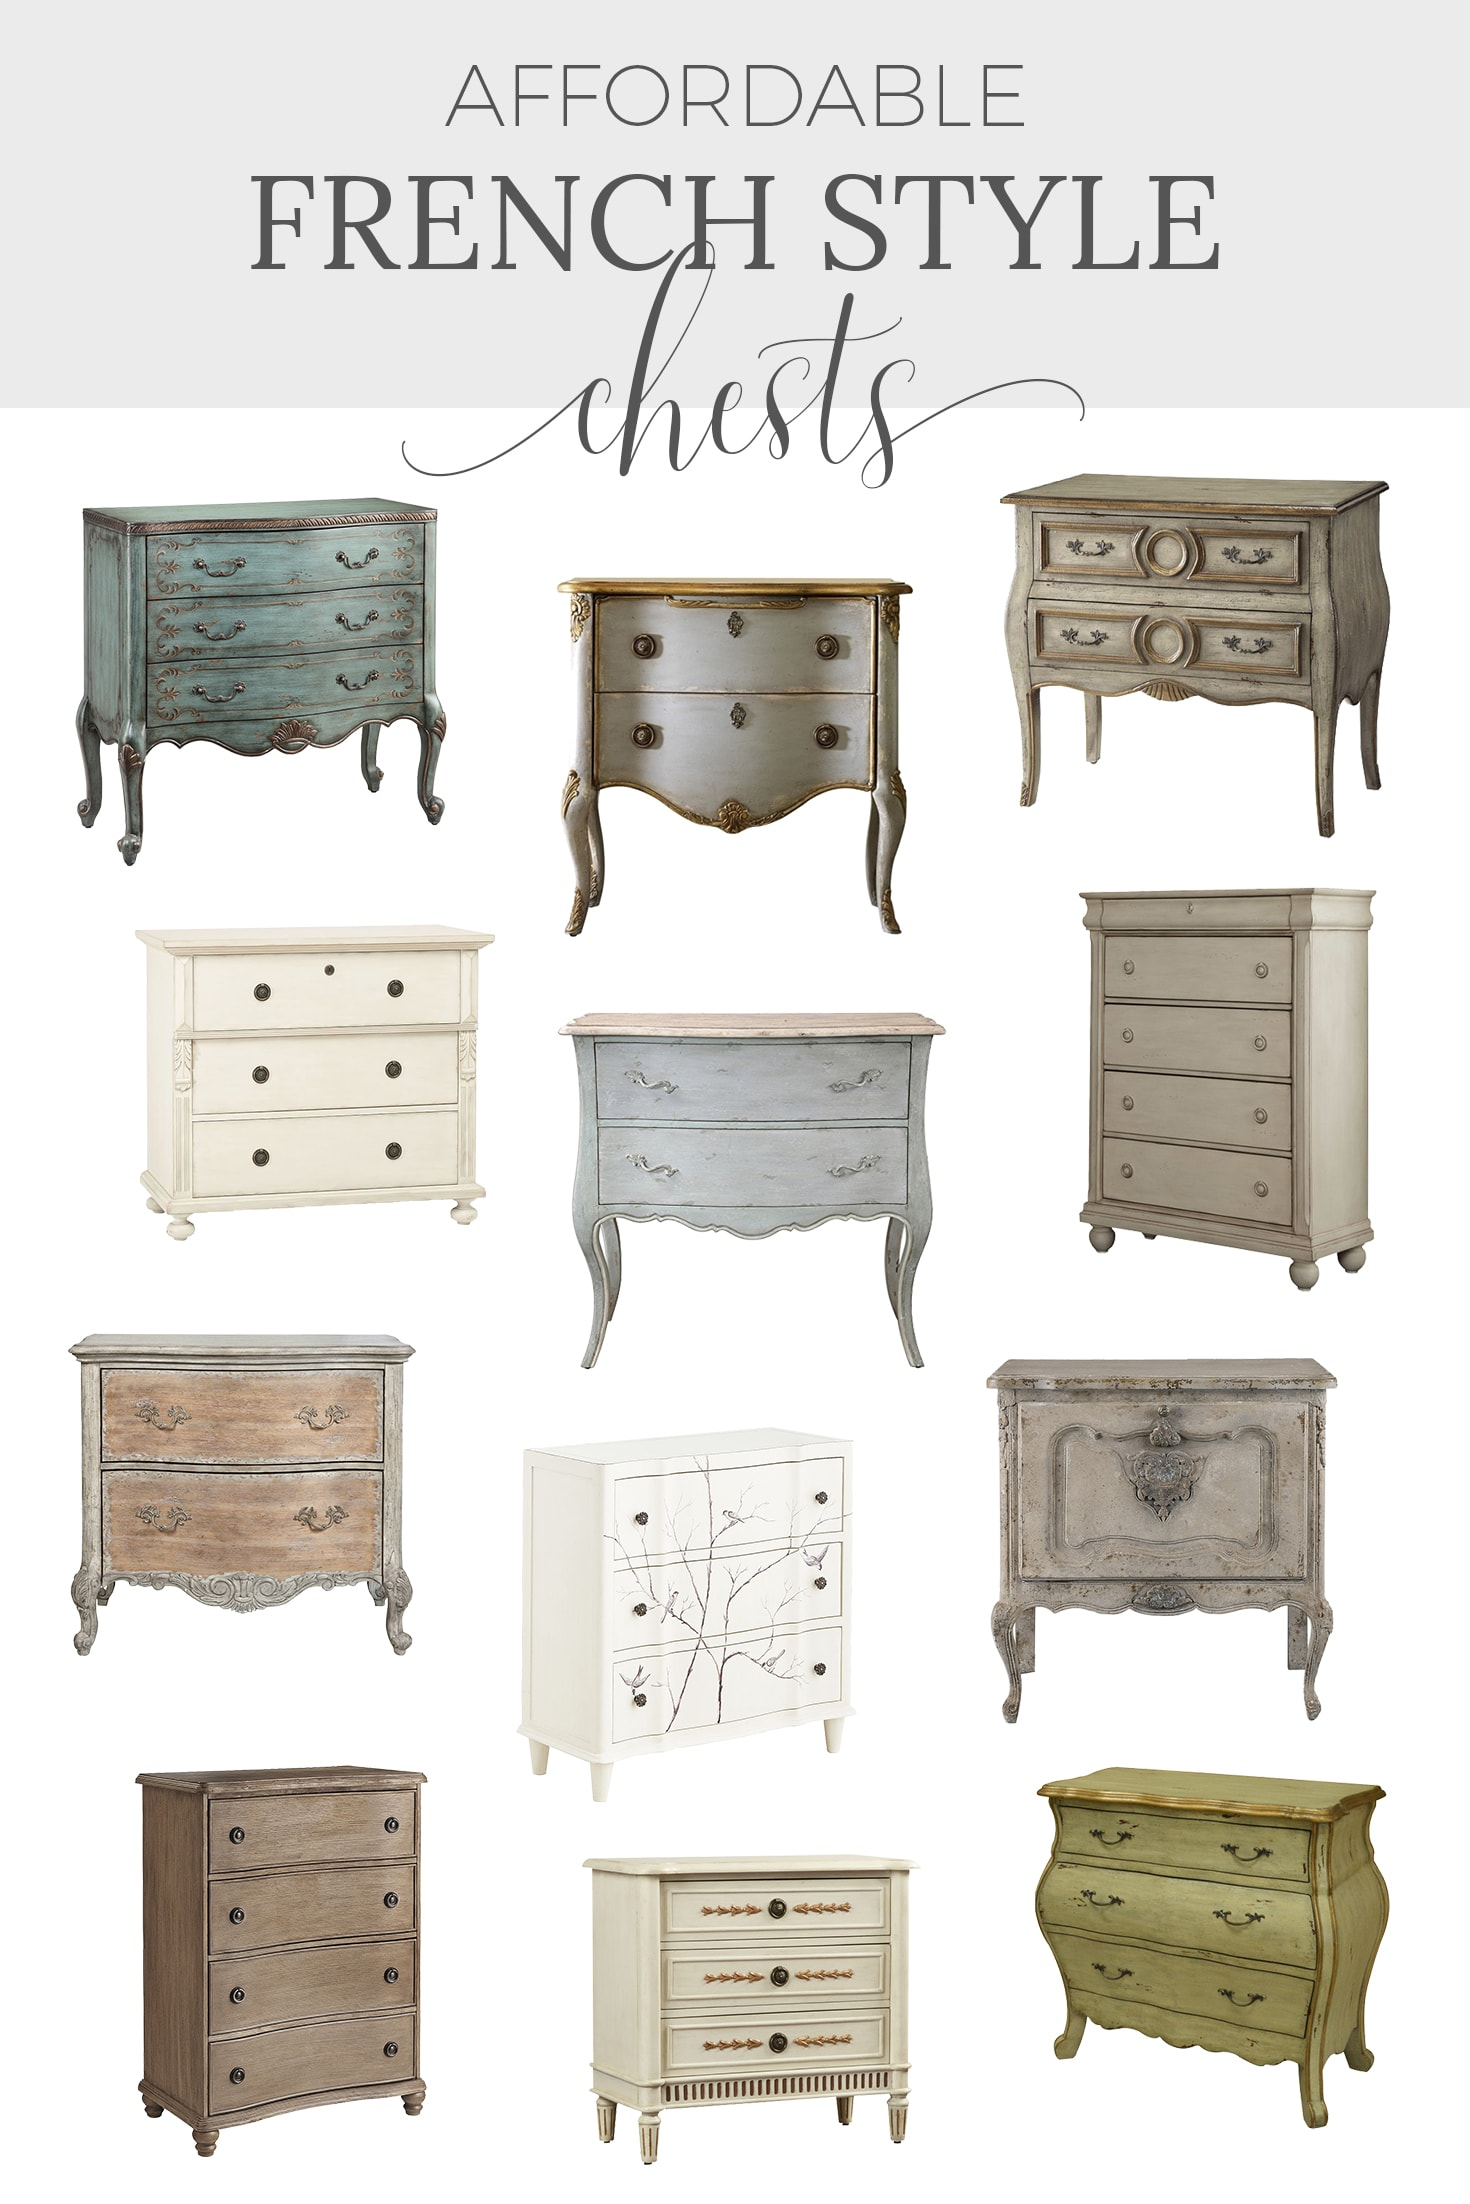 The French Dresser Where To Buy An Affordable French Chest Of Drawers